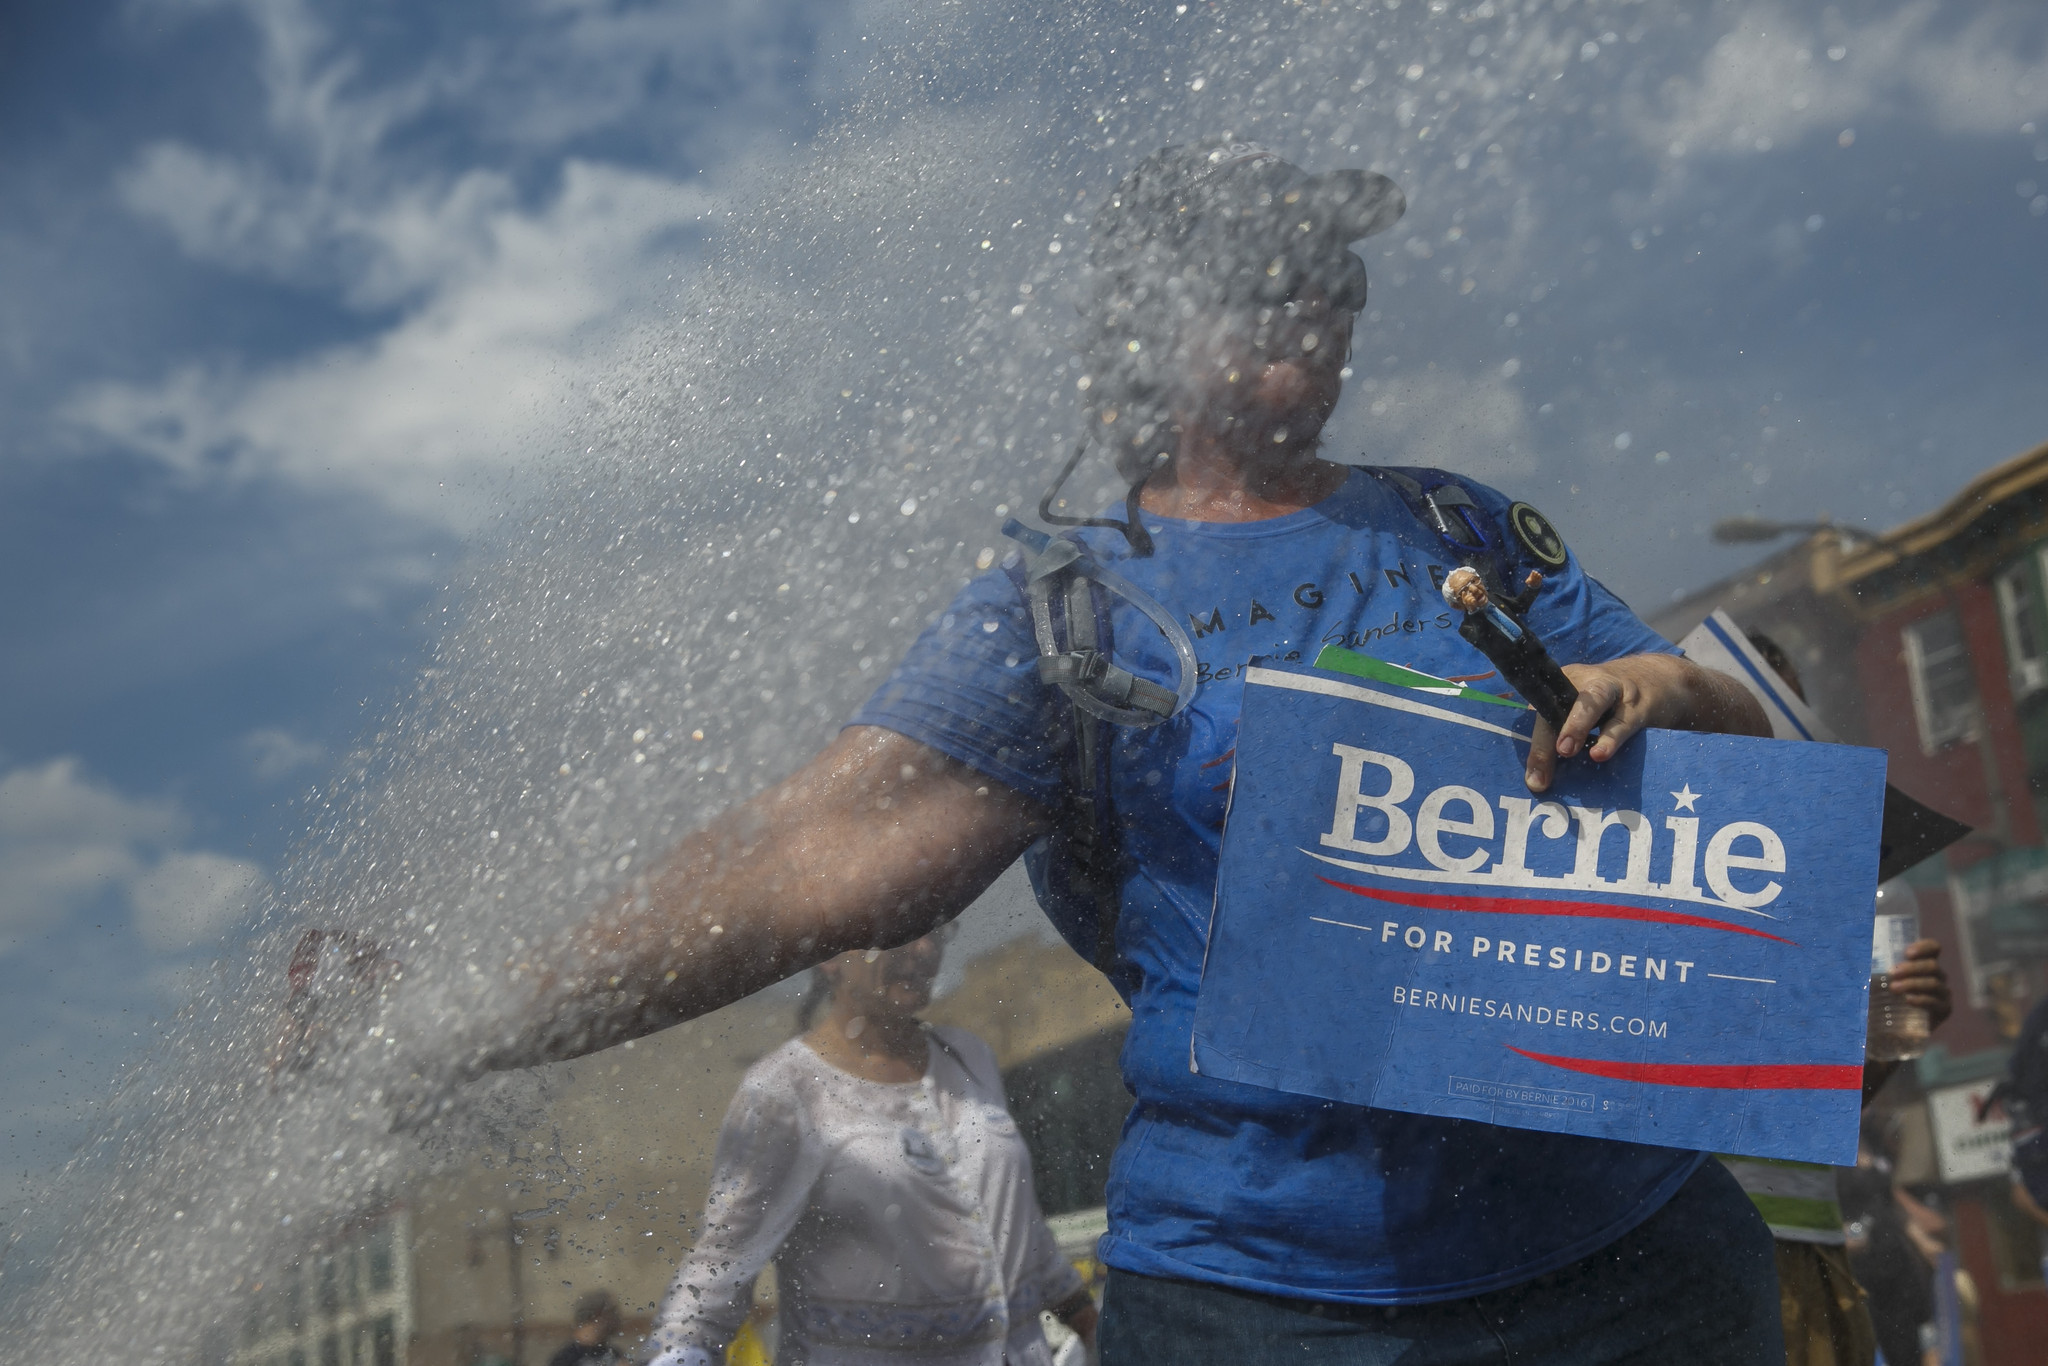 Bernie Sanders supporters walk past an open fire hydrant during Sunday's events in Philadelphia.